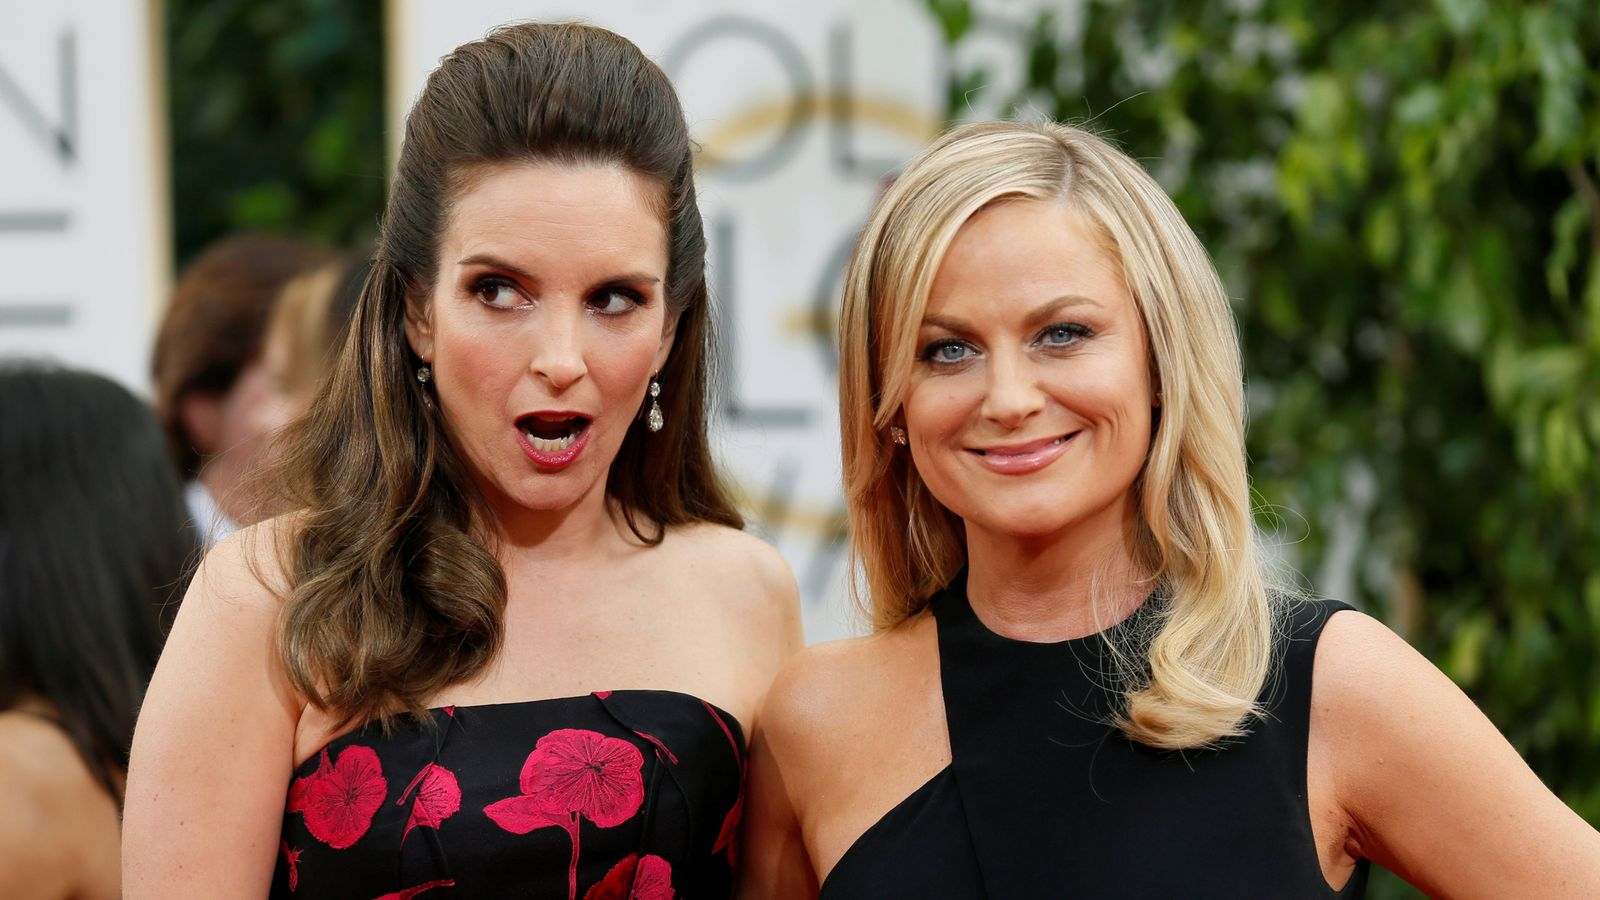 Golden Globes live update: Tina Fey and Amy Poehler get ready to kick off a prestigious awards ceremony |  Ents & Arts News